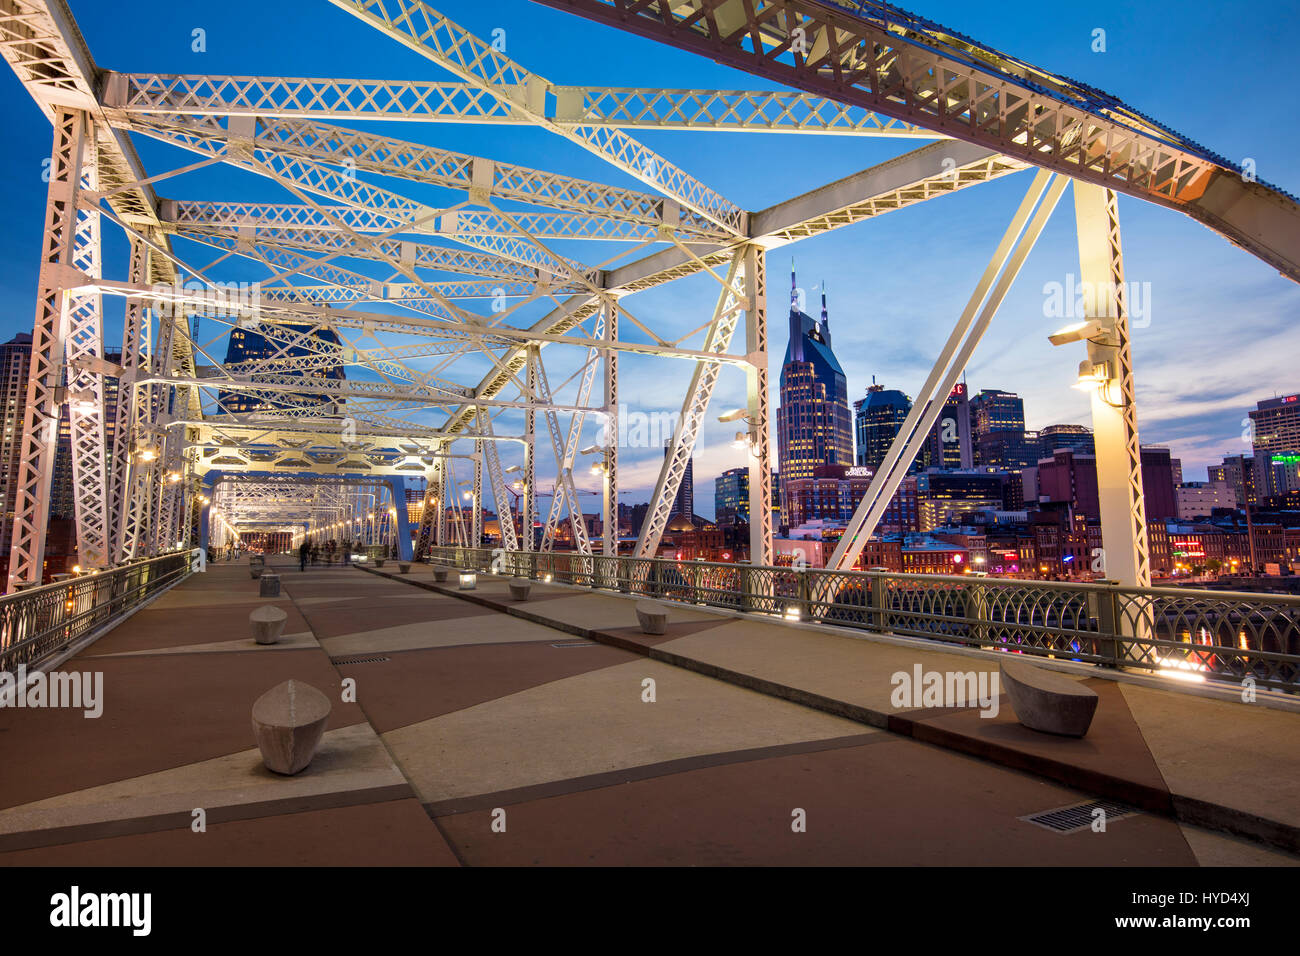 Newly named John Seigenthaler Pedestrian Bridge (formerly Shelby St Bridge - b 1907), with skyline of Nashville - Stock Image